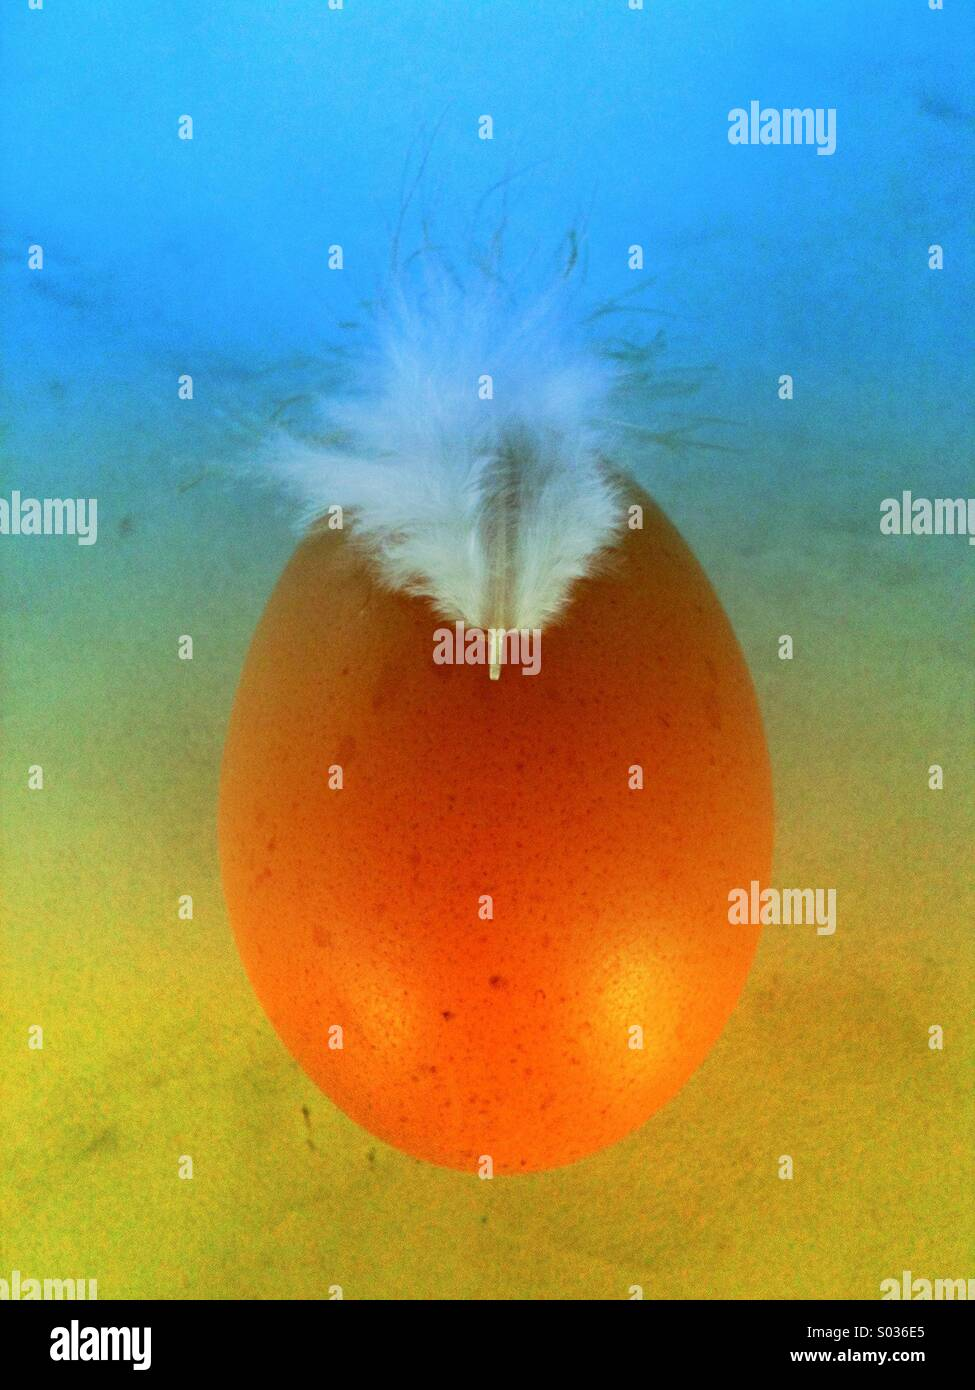 Shell egg and feather using art filter. - Stock Image